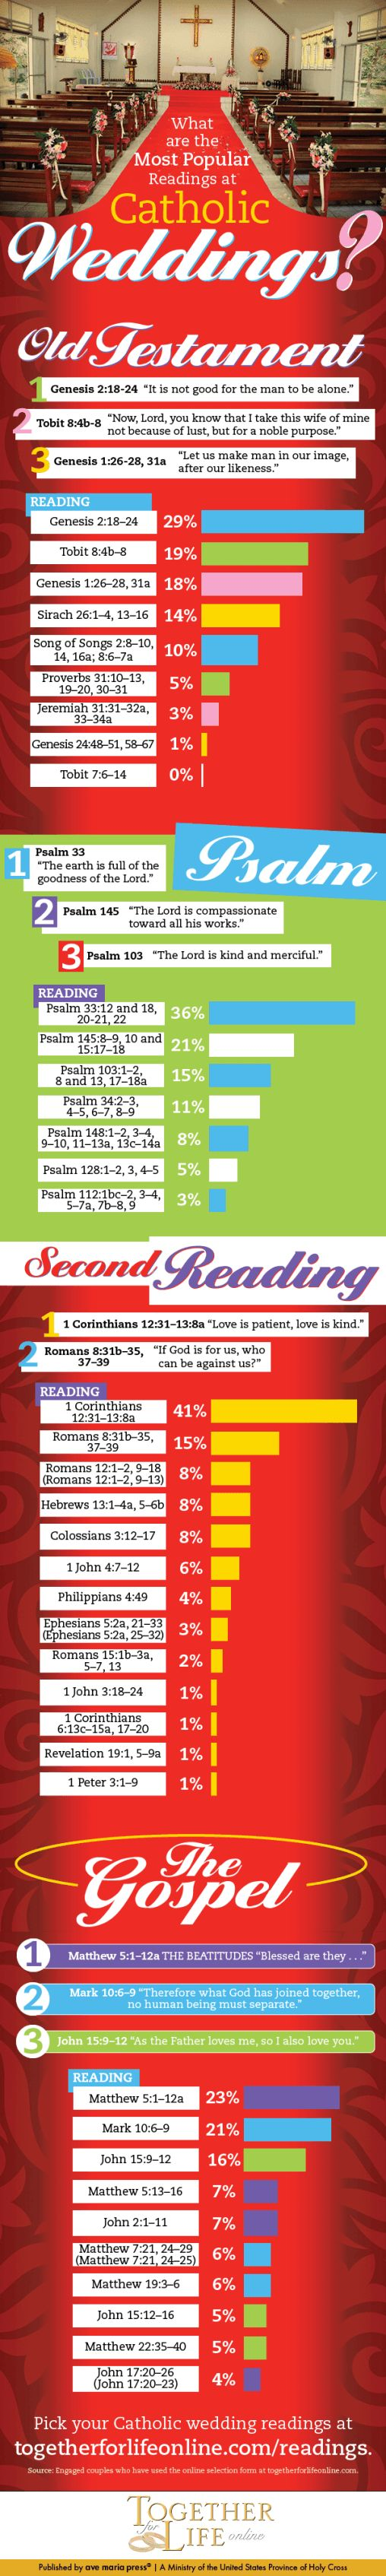 Most Popular Catholic Wedding Readings. Planning a wedding can be an overwhelming experience since there is so much to do and think about! Catholic weddings are no exception. From going to your marriage preparation process to crafting your wedding ceremony, there's a number of things to take care of. Fortunately, I found a great resource for Catholic couples called Together for Life. Click through to read the entire post!